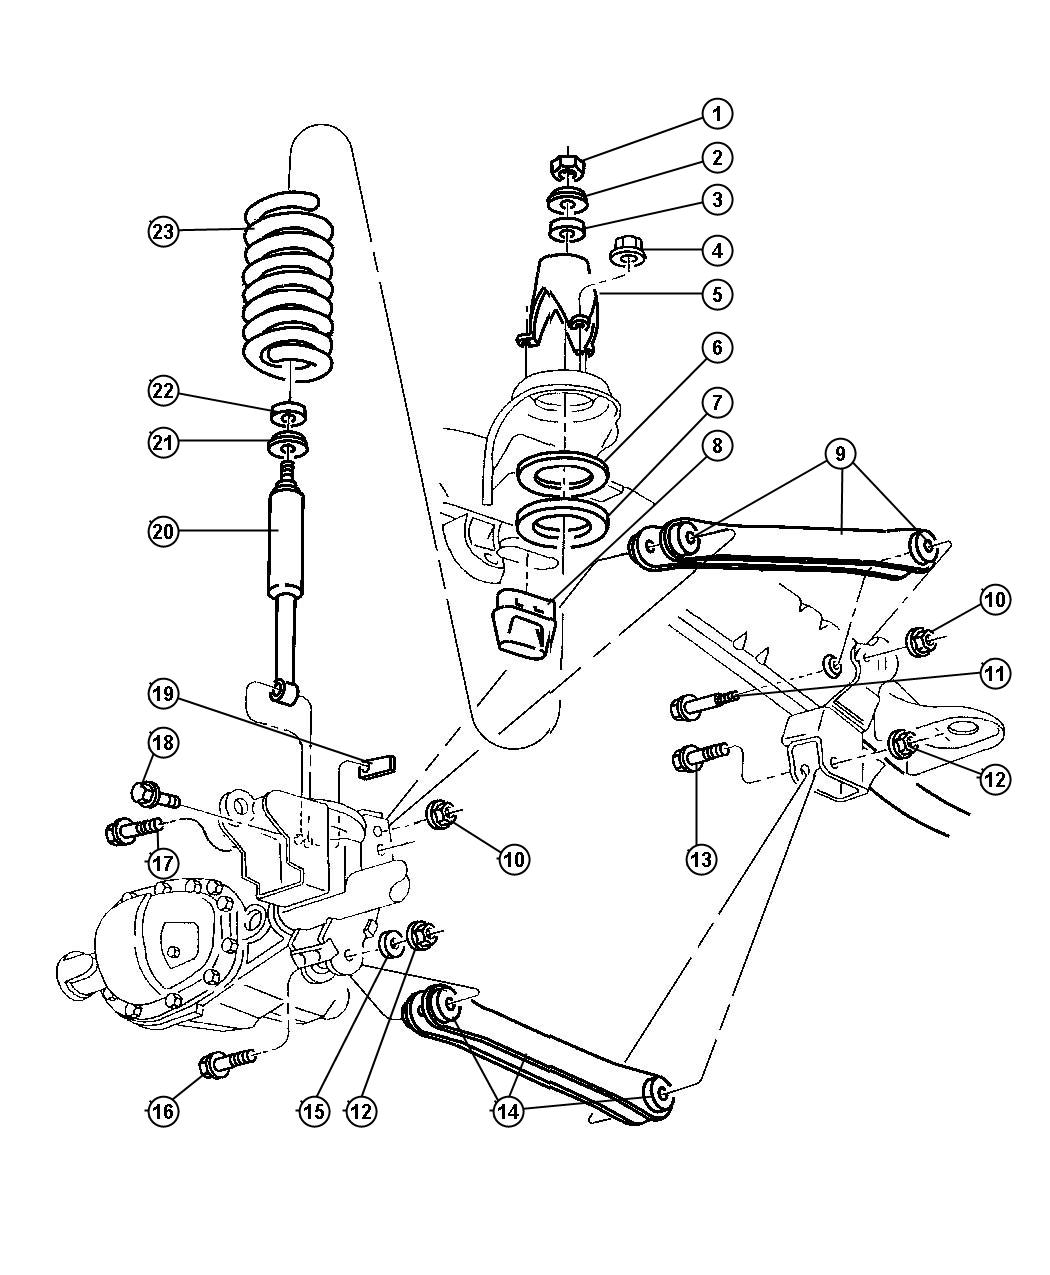 2012 Dodge Ram Stereo Wiring Diagram from www.moparpartsinc.com